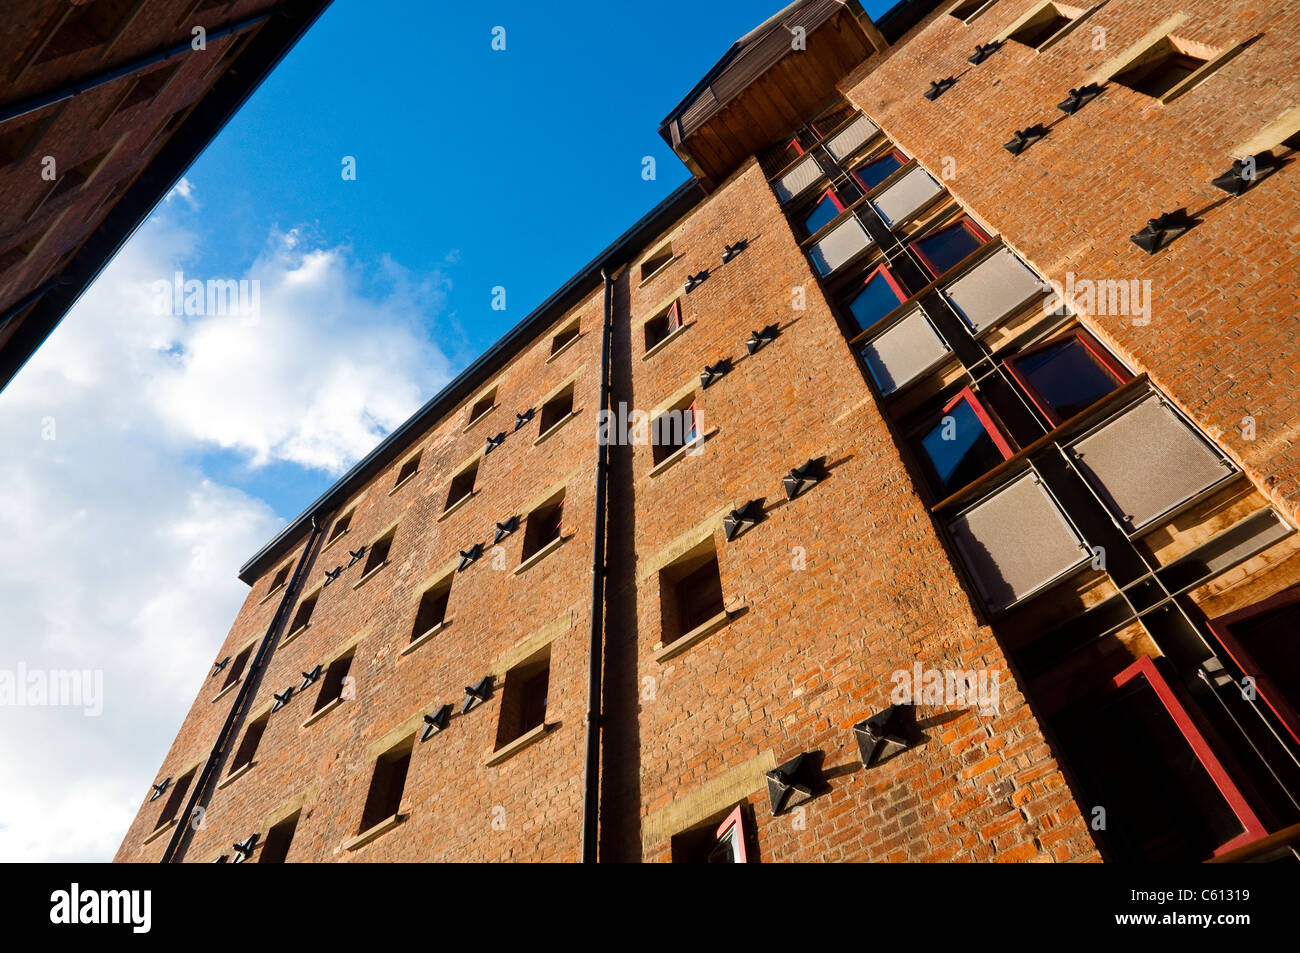 Gloucester Docks - warehouses converted to residential apartments / flats. Gloucestershire, UK. - Stock Image